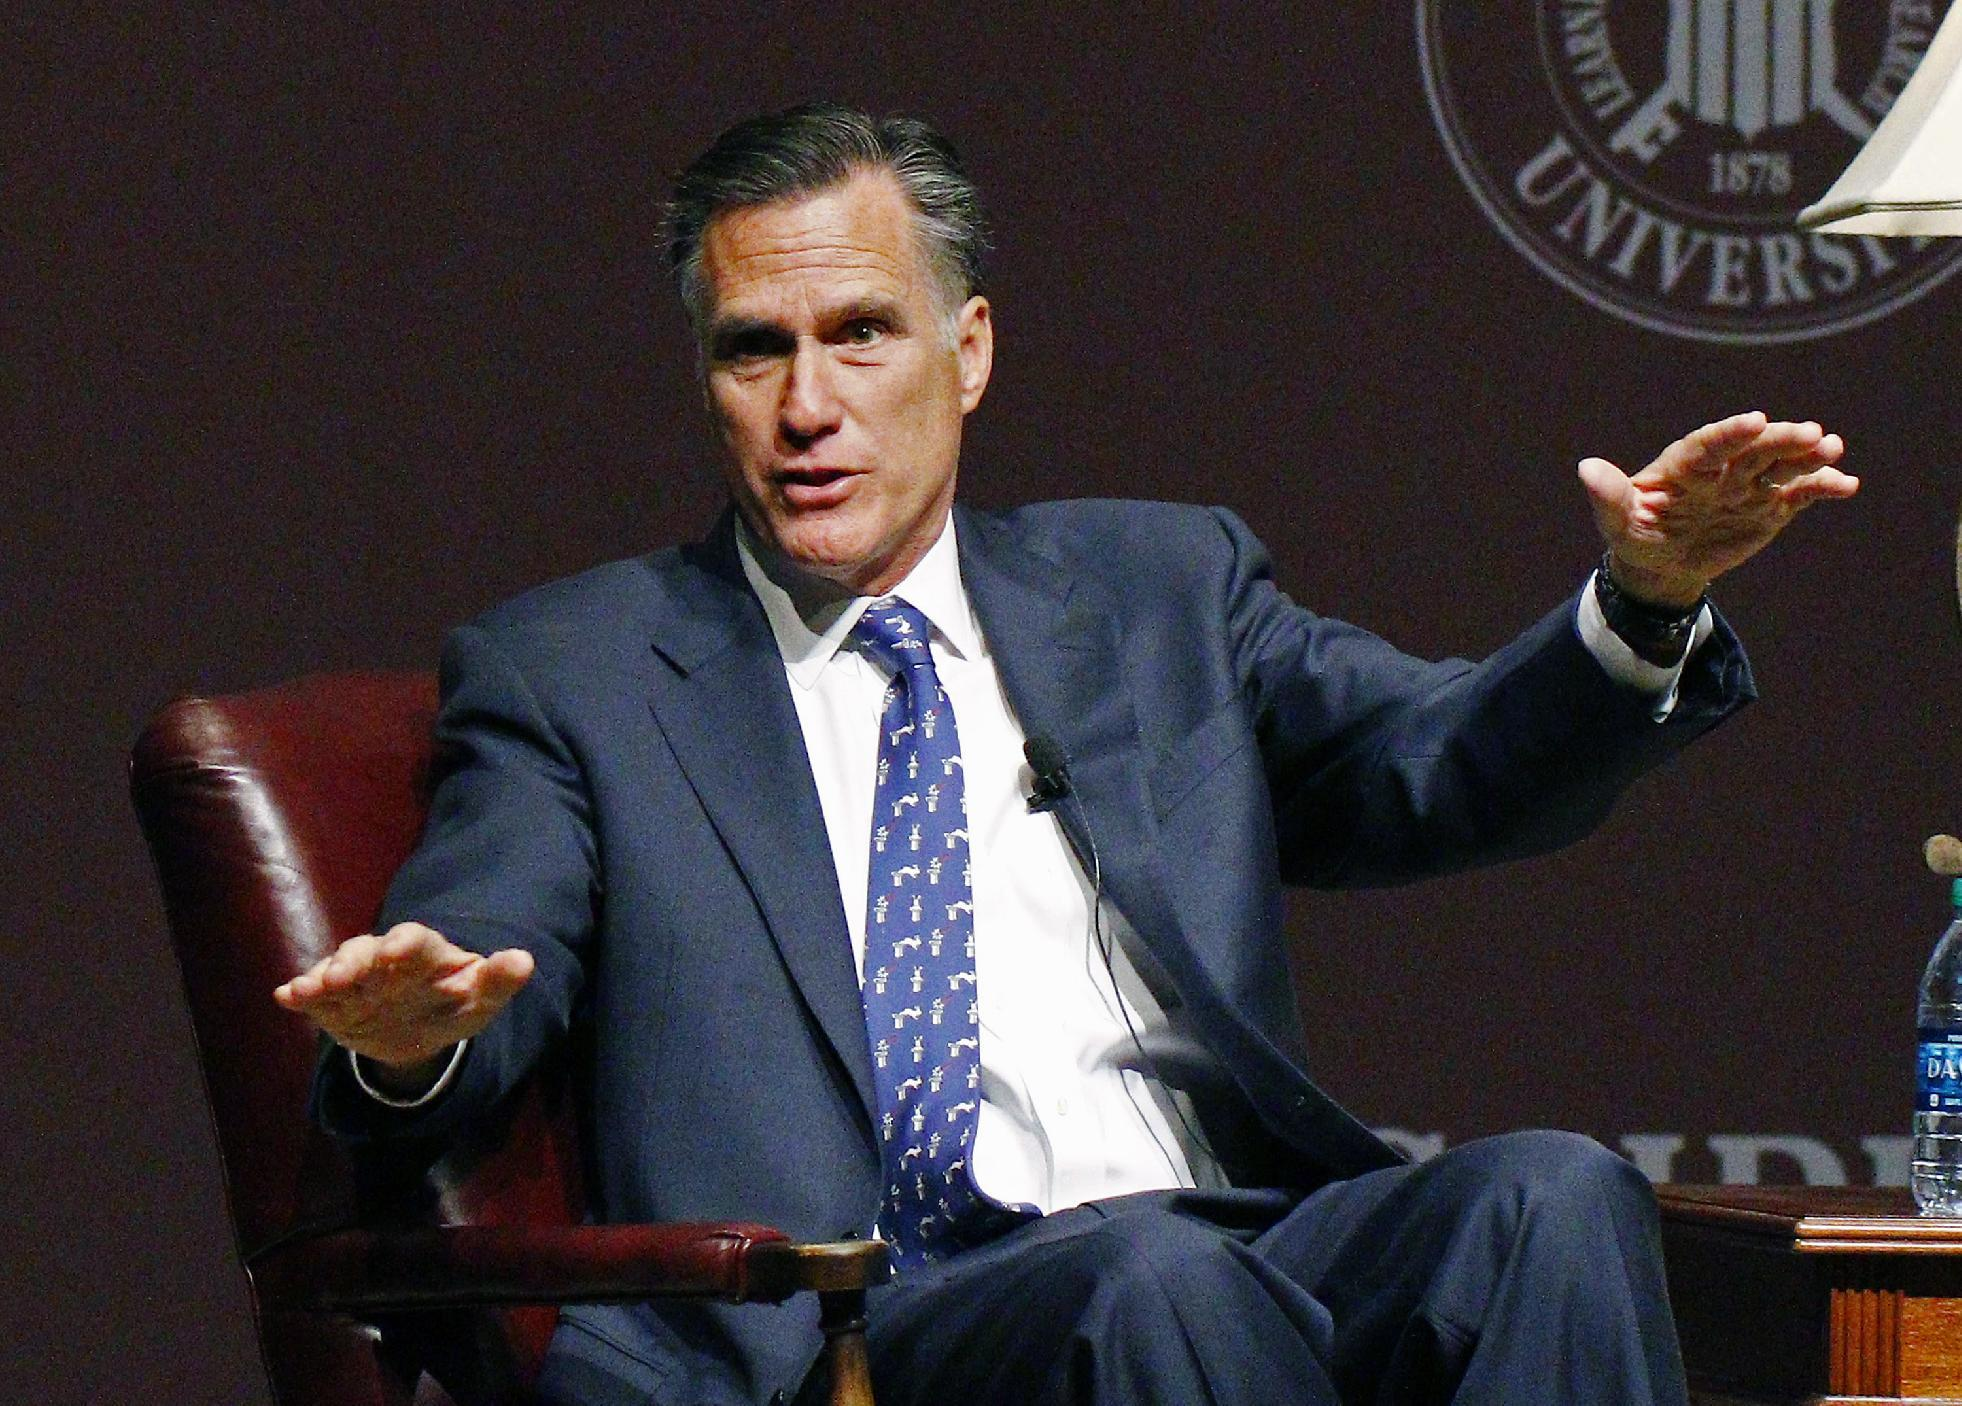 Mitt Romney says he will not make 2016 White House bid